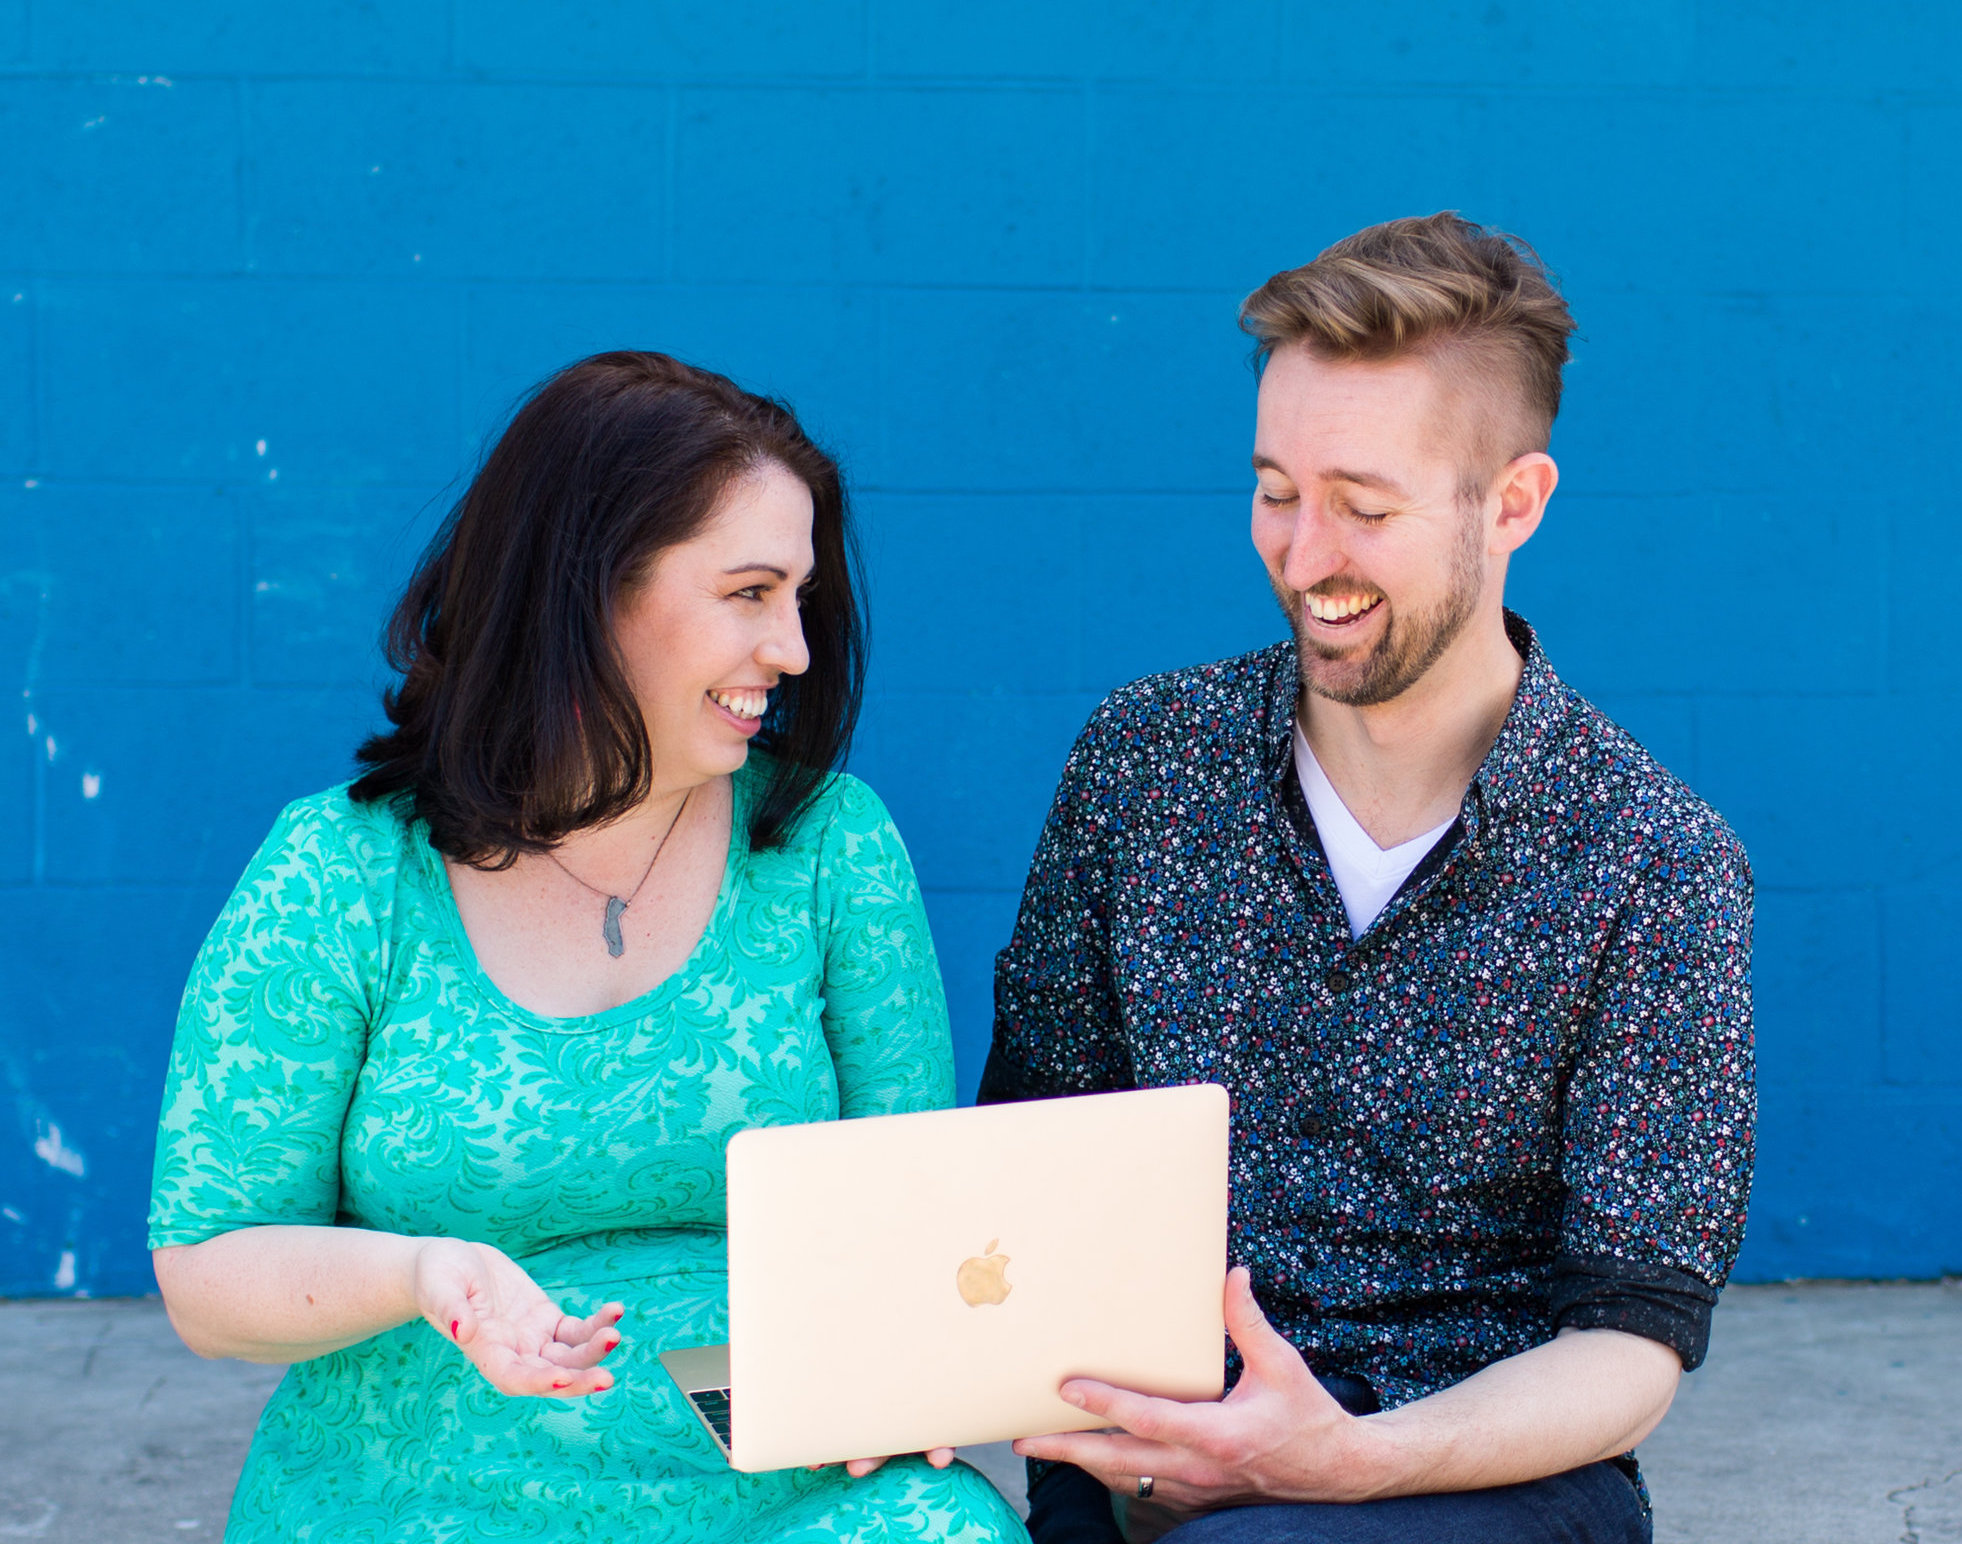 That's us just casually crafting this new program and it's totally not posed at all. ;)